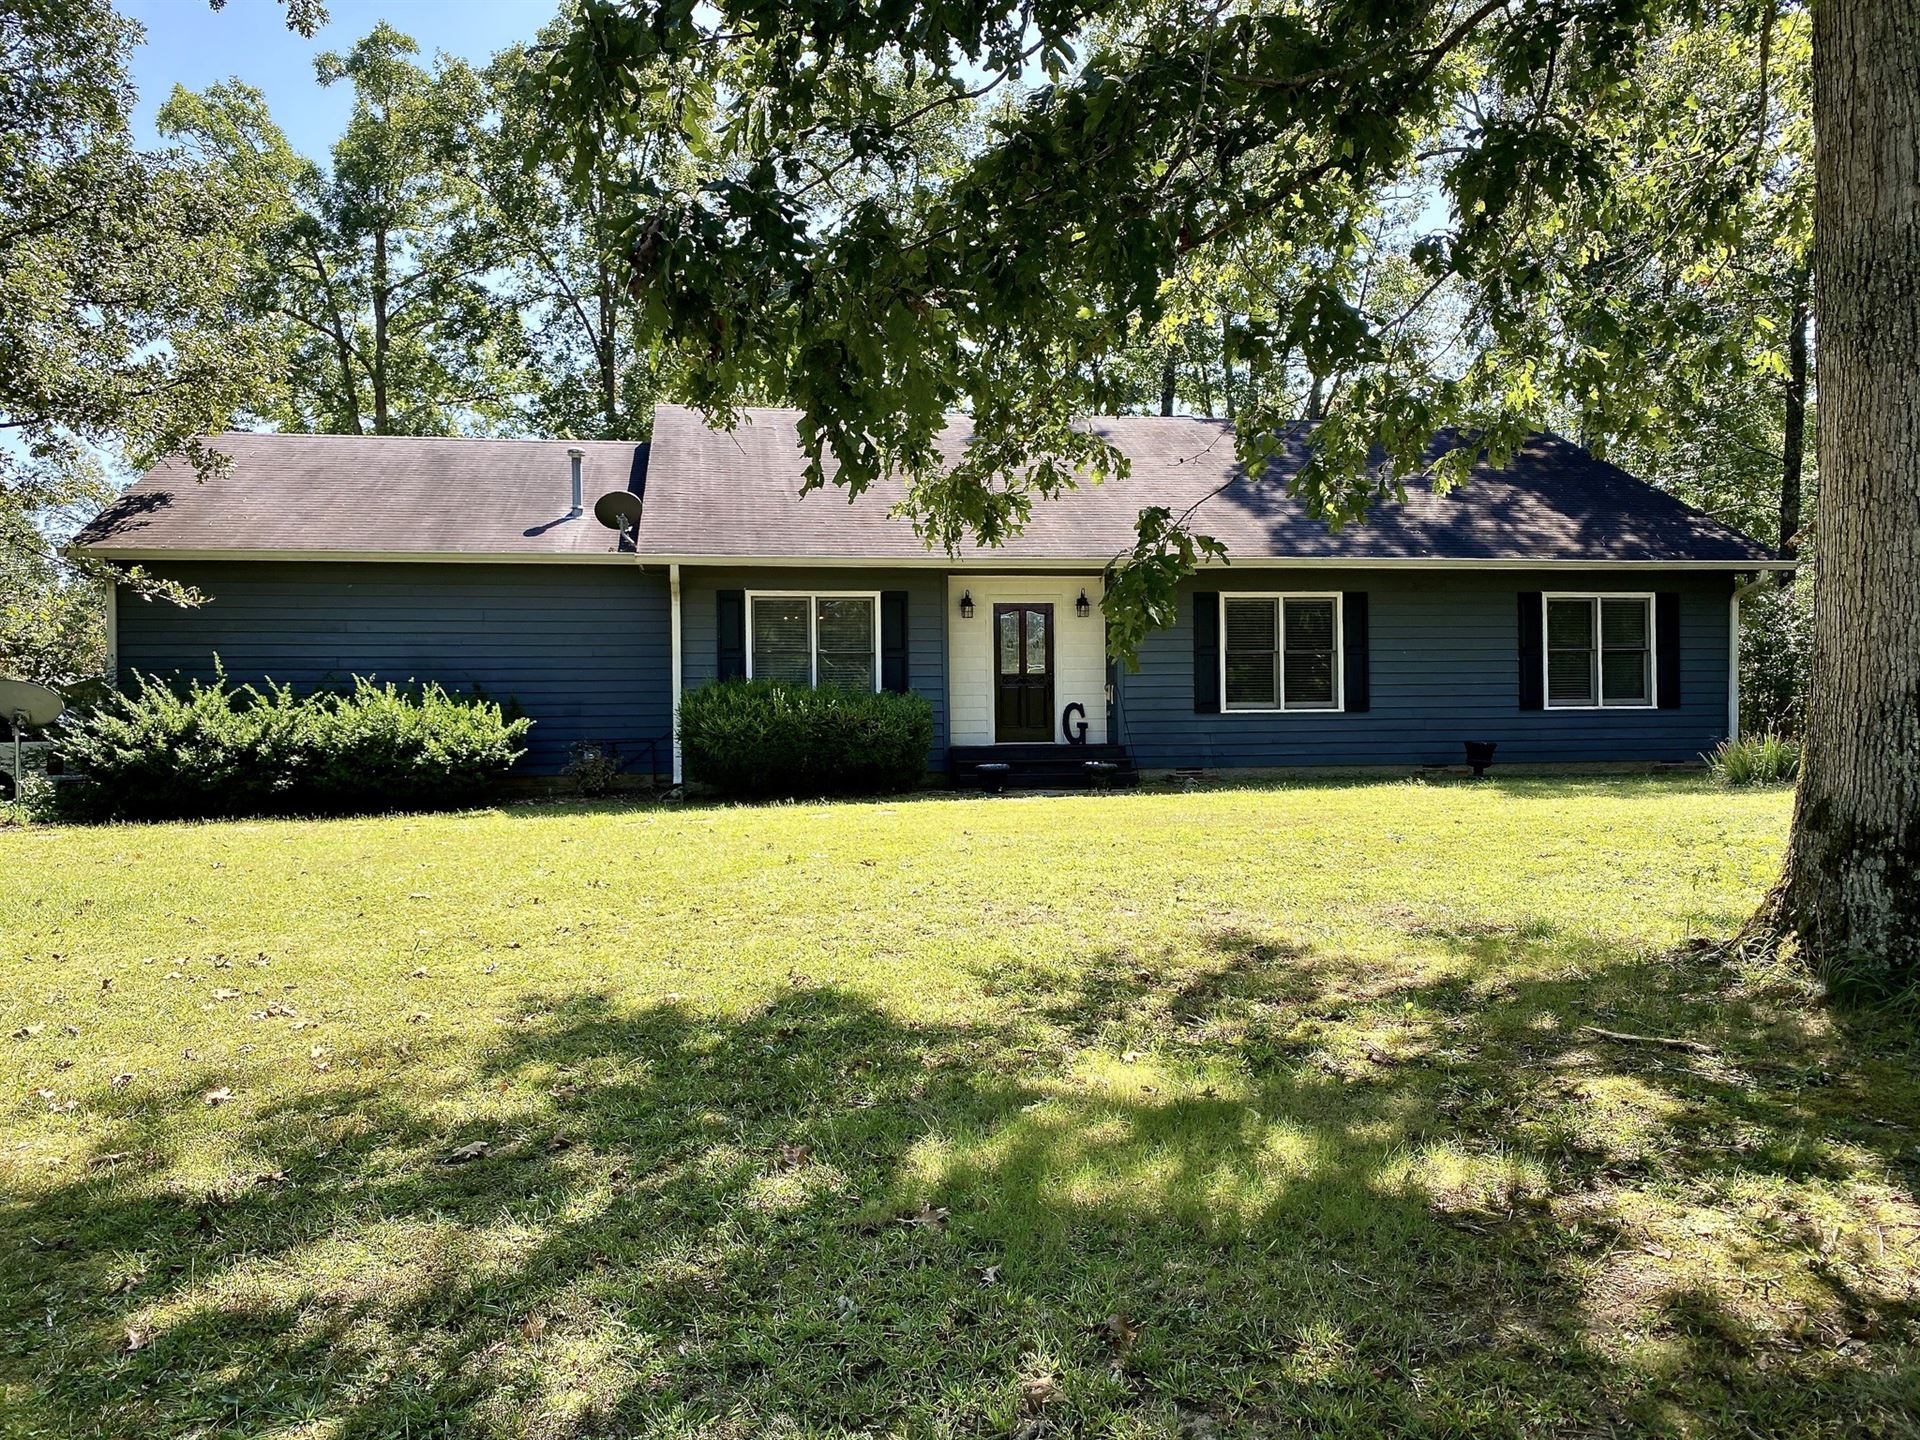 116 Sycamore Rd, Dickson, TN 37055 - MLS#: 2191447